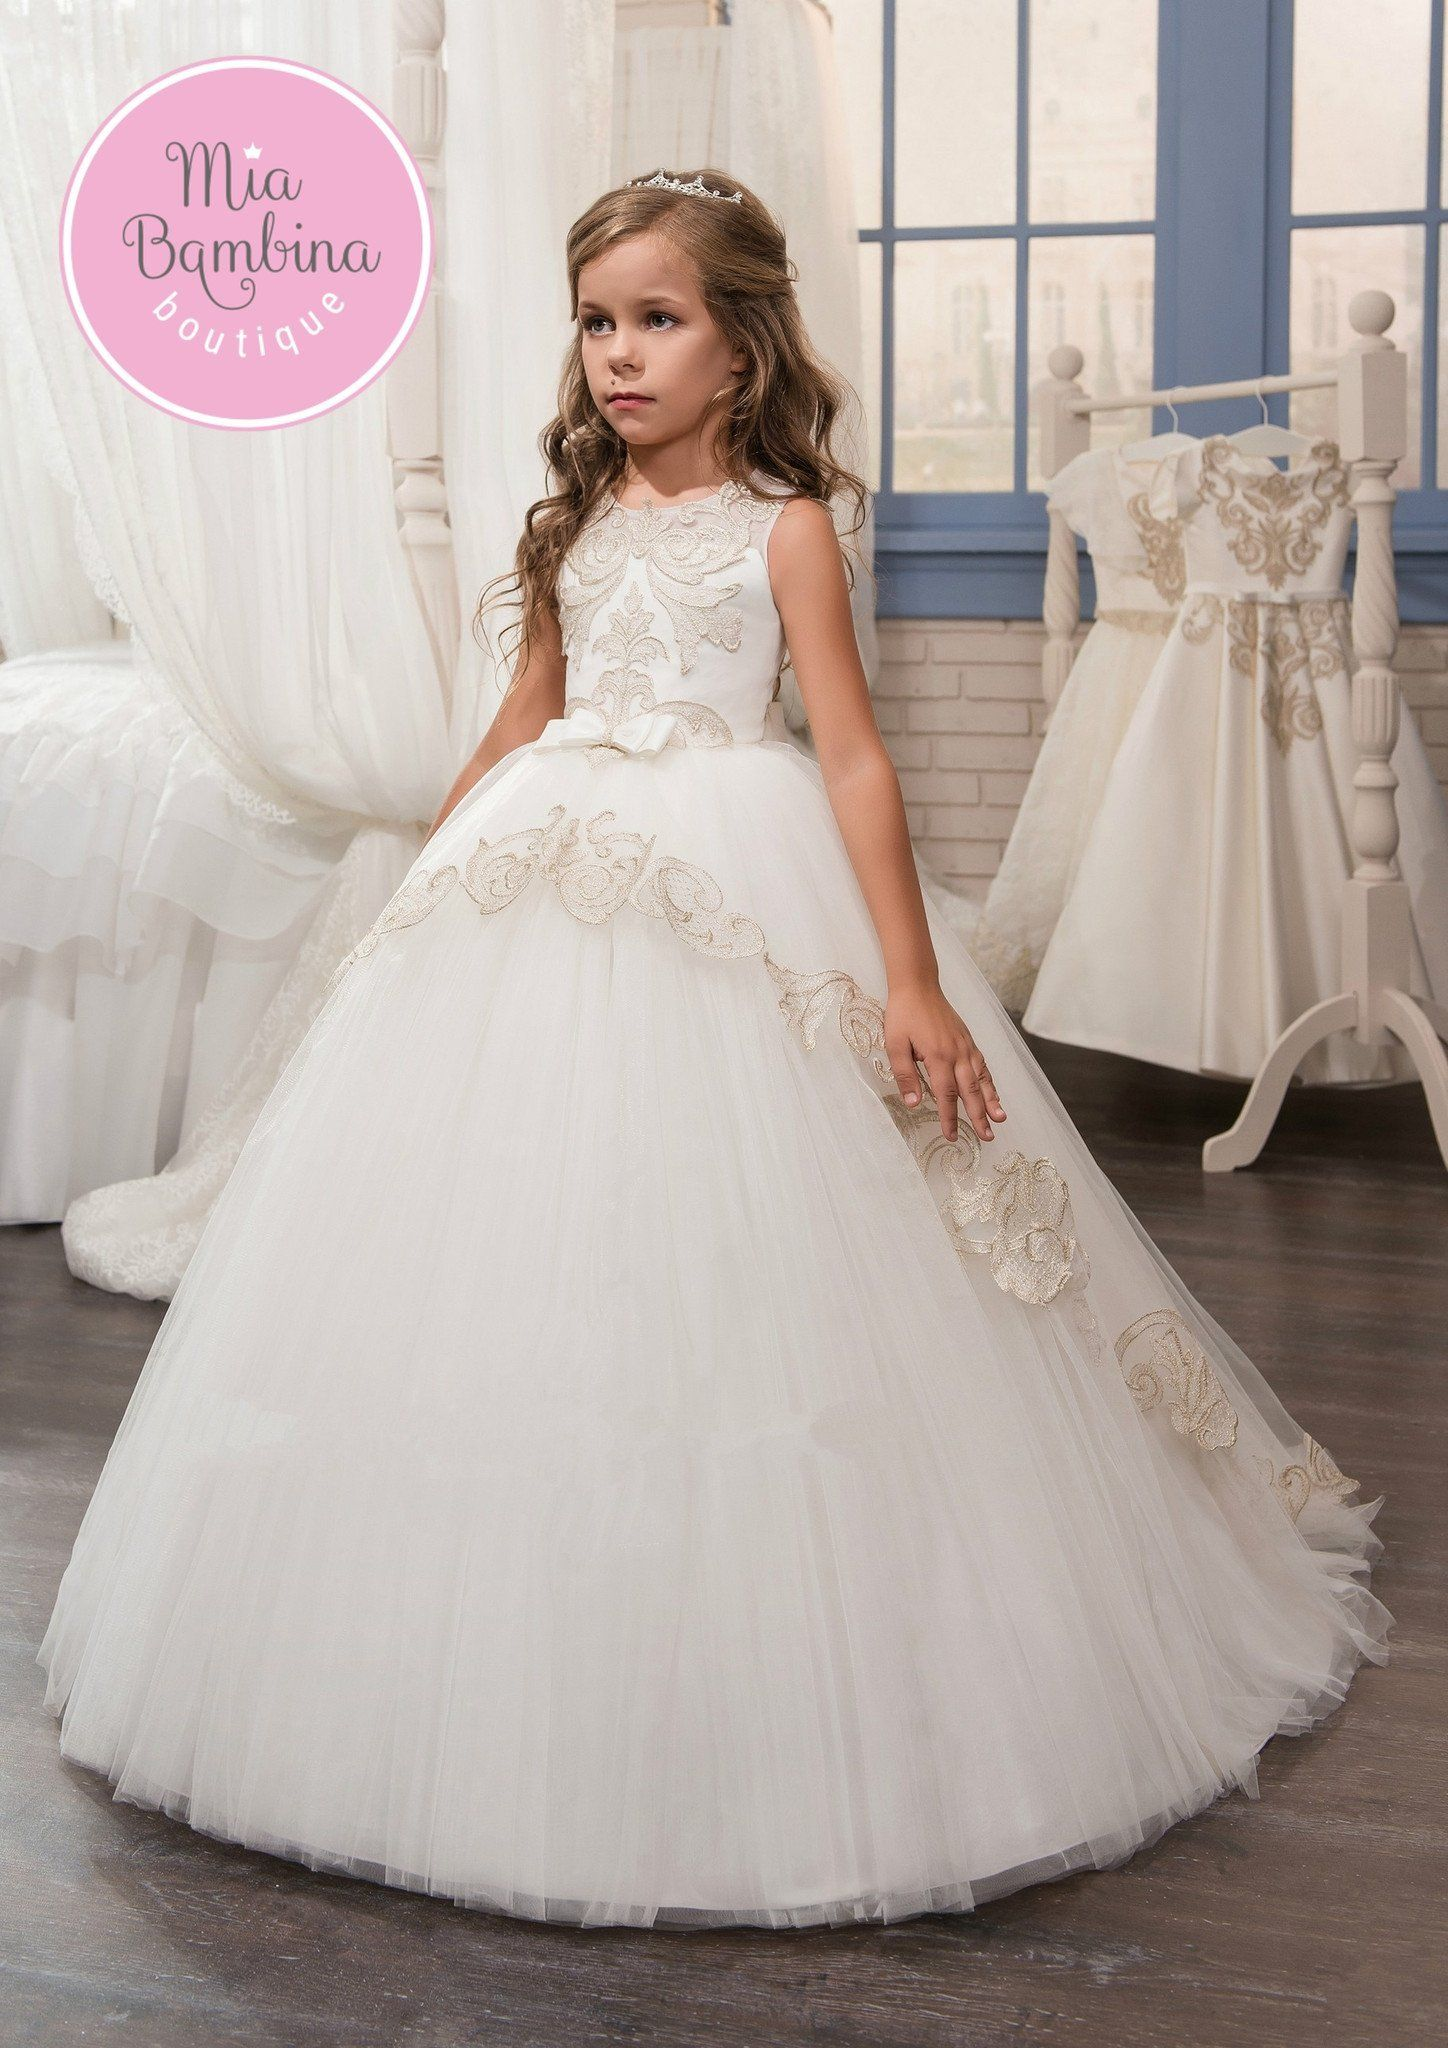 The Houston flower girl dress is a sleeveless ball gown for little girls.  Tank bodice features delicate lace appliques and chic bows detailing. 9c7a72dbf9ca